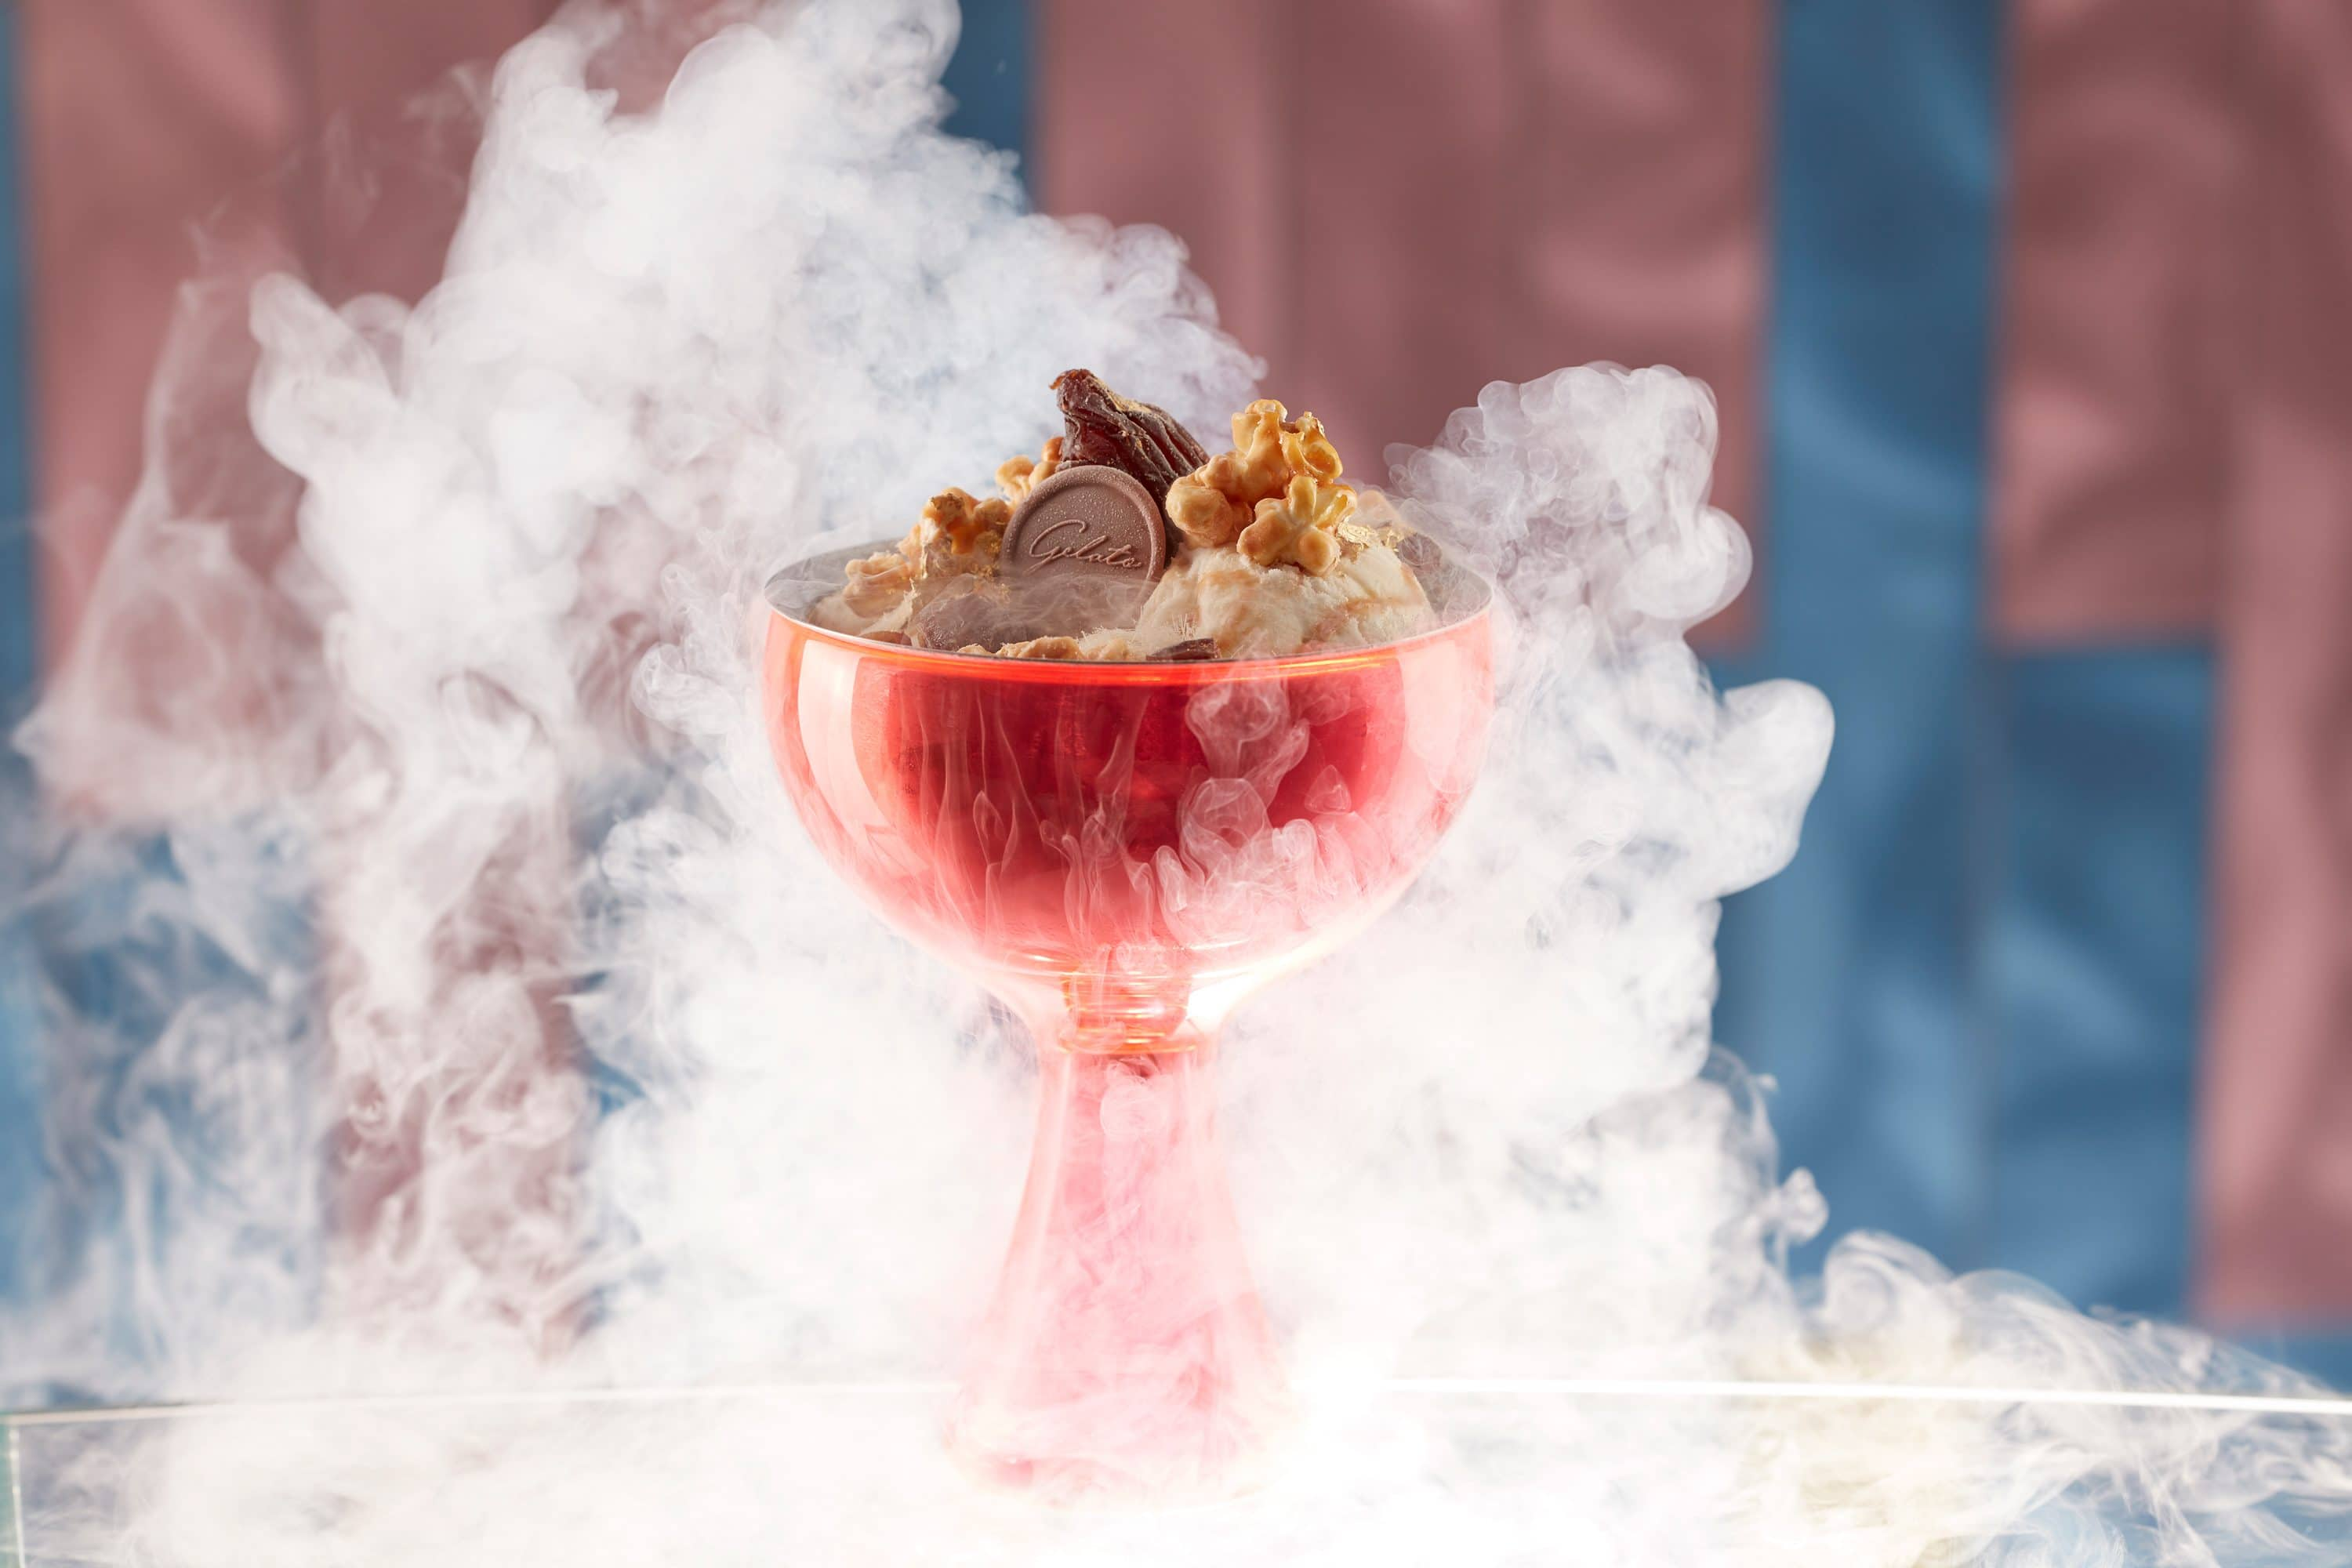 Nitrogen icecreamology dessert with dry ice smoke